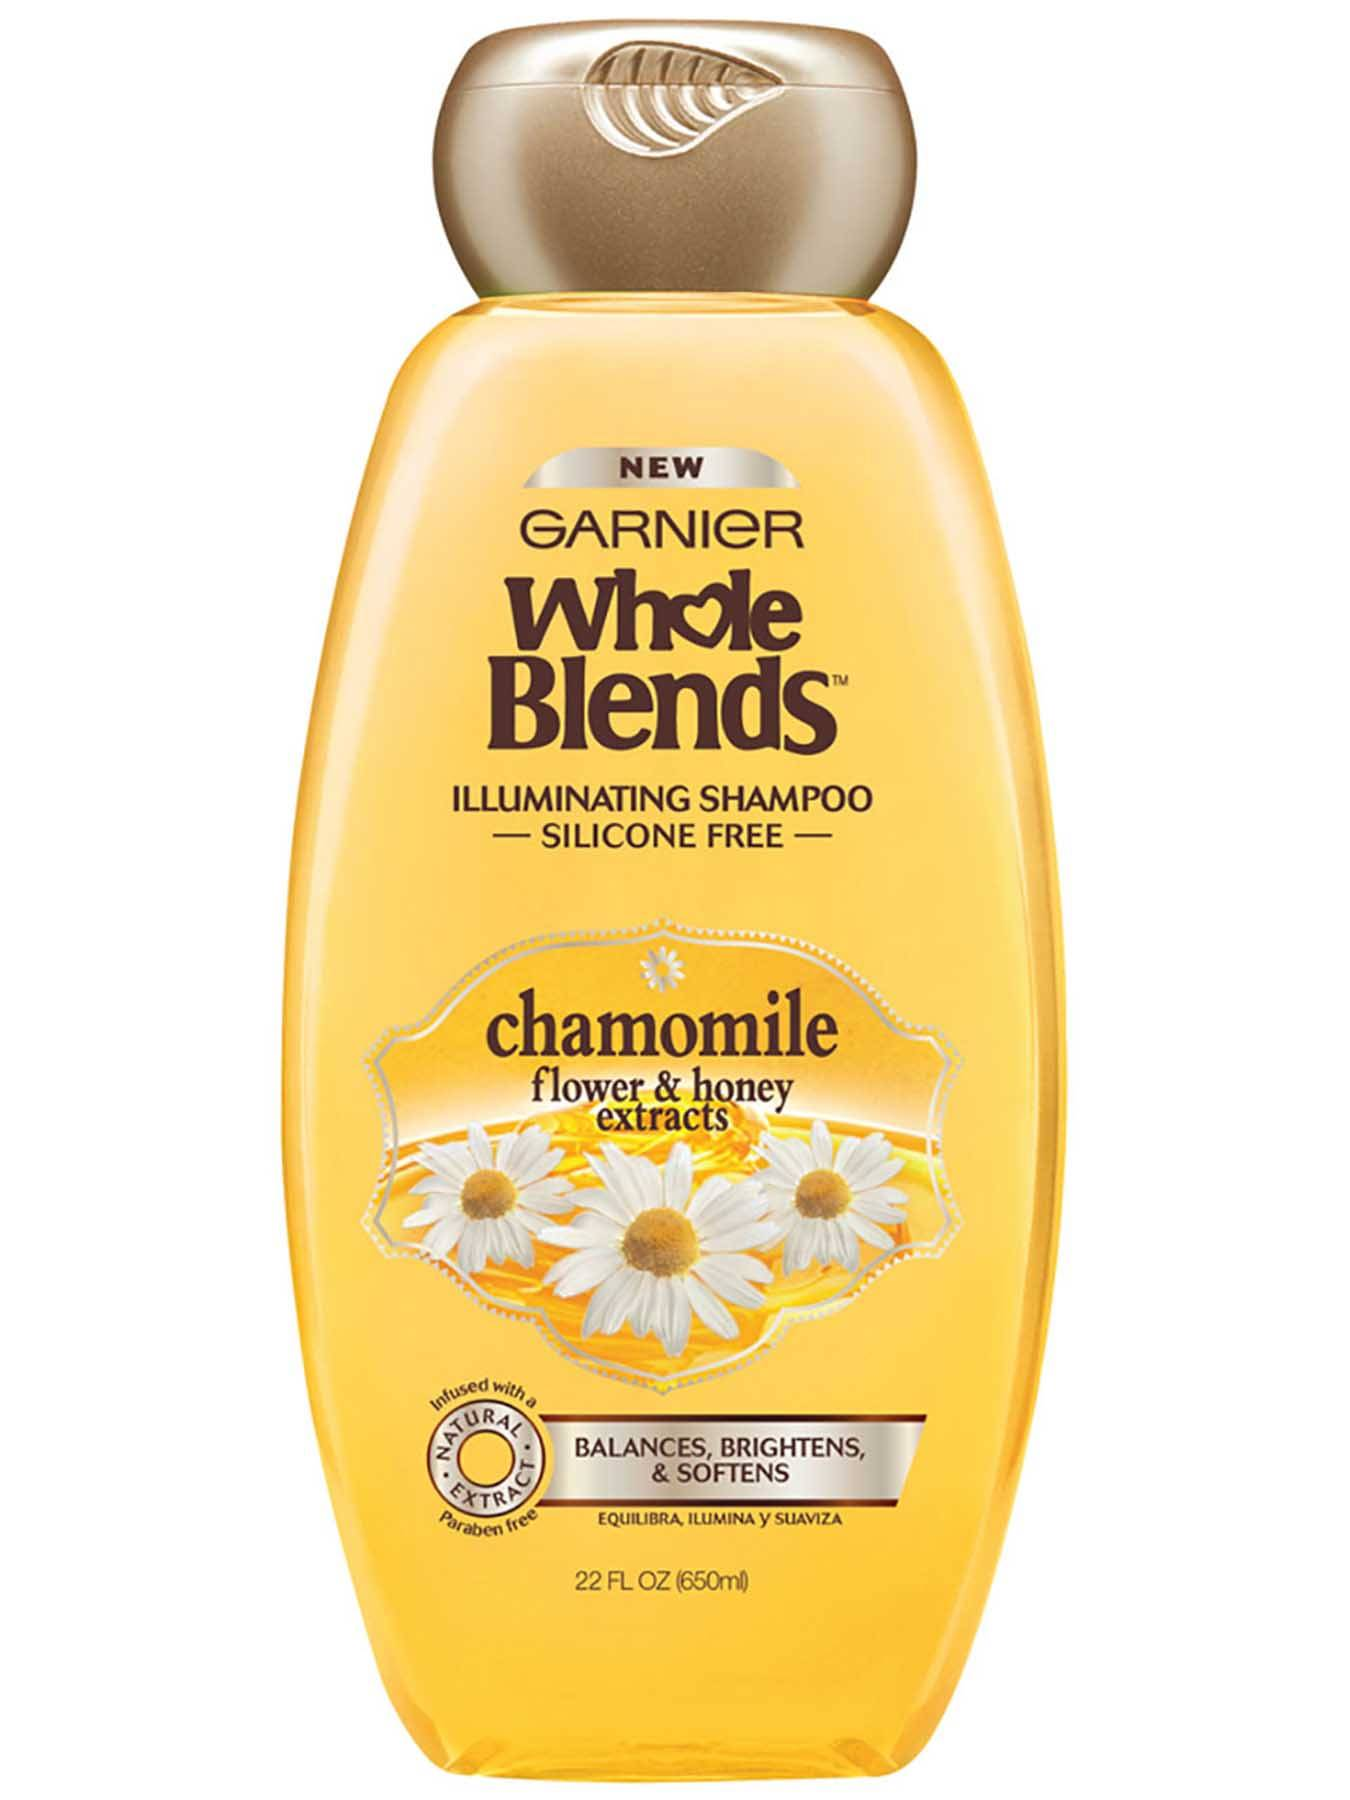 Front view of Illuminating Shampoo with Chamomile Flower and Honey Extracts, Silicone-Free.